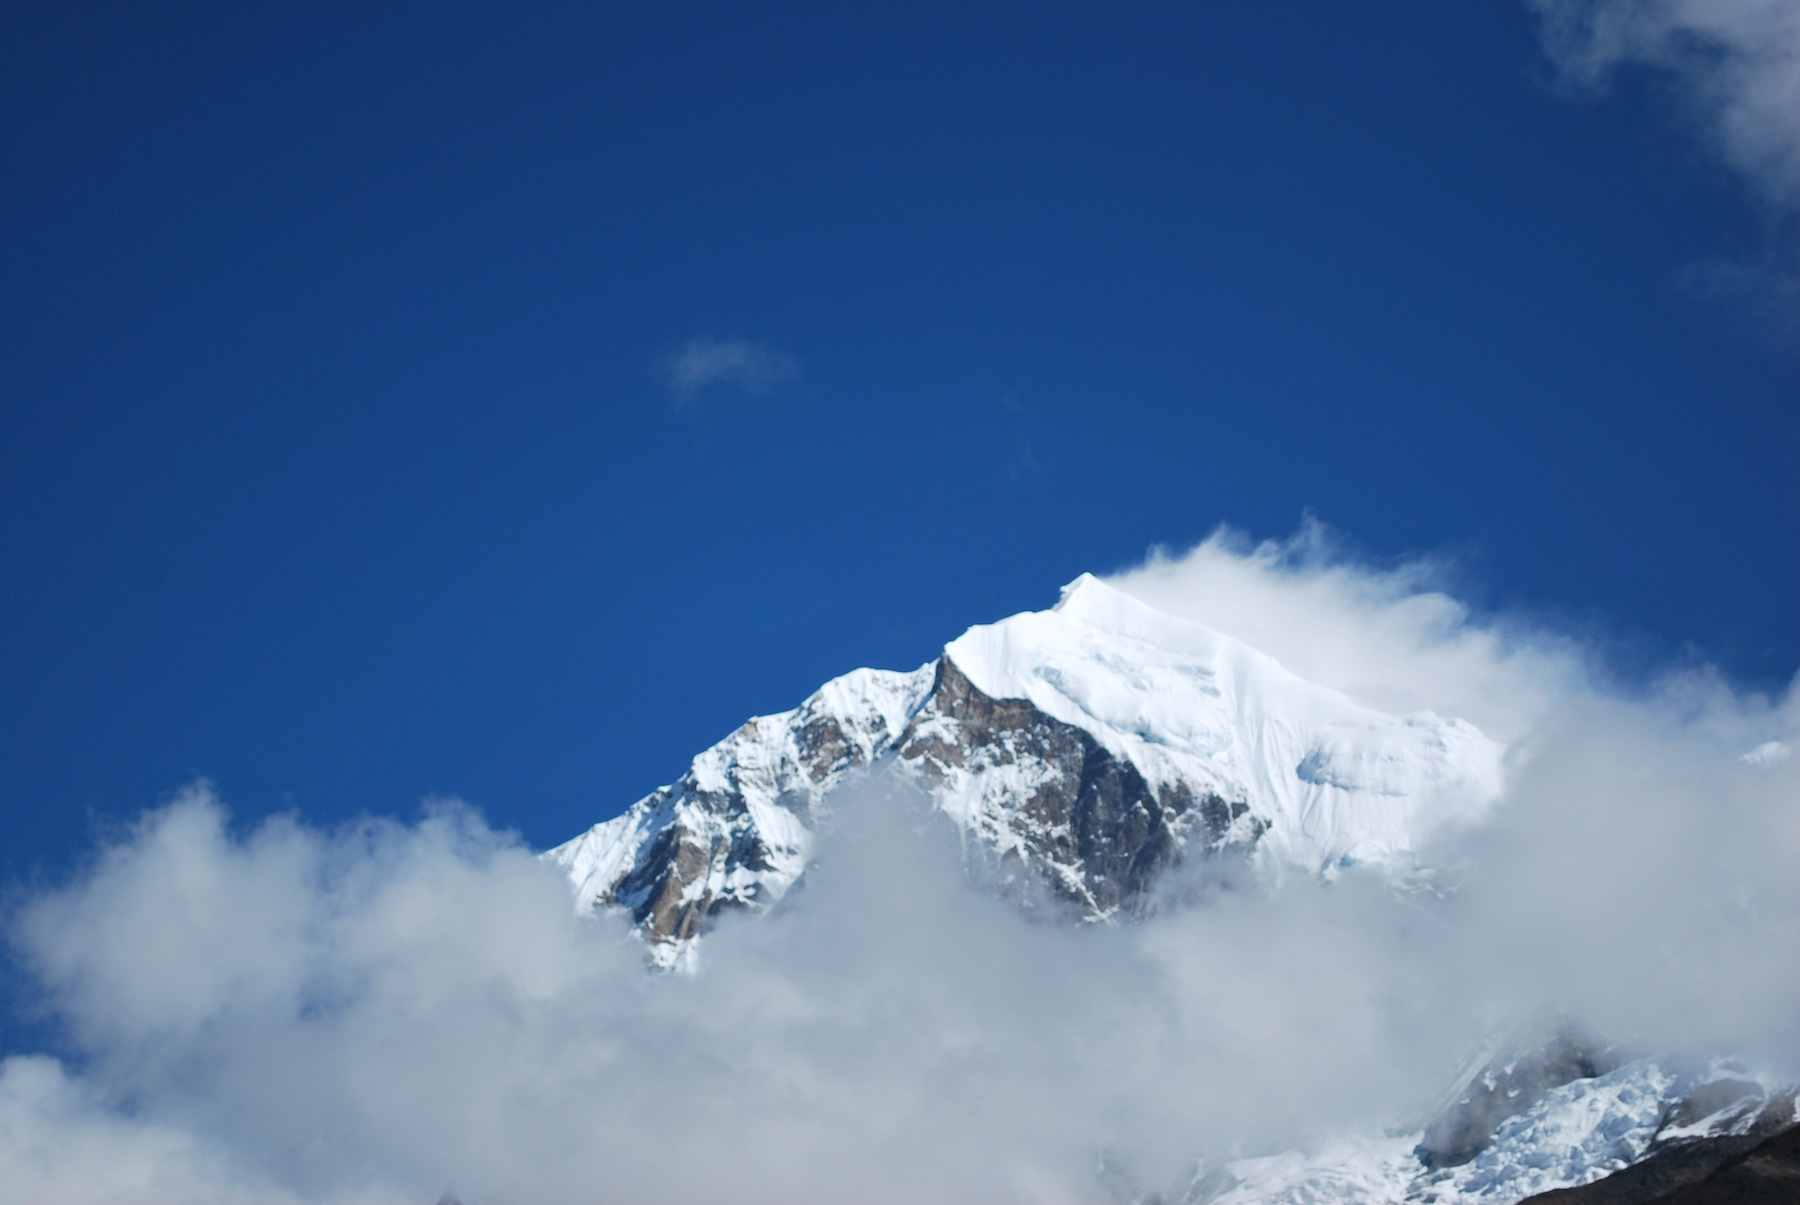 One of the five peaks of Kanchenjunga covered in clouds